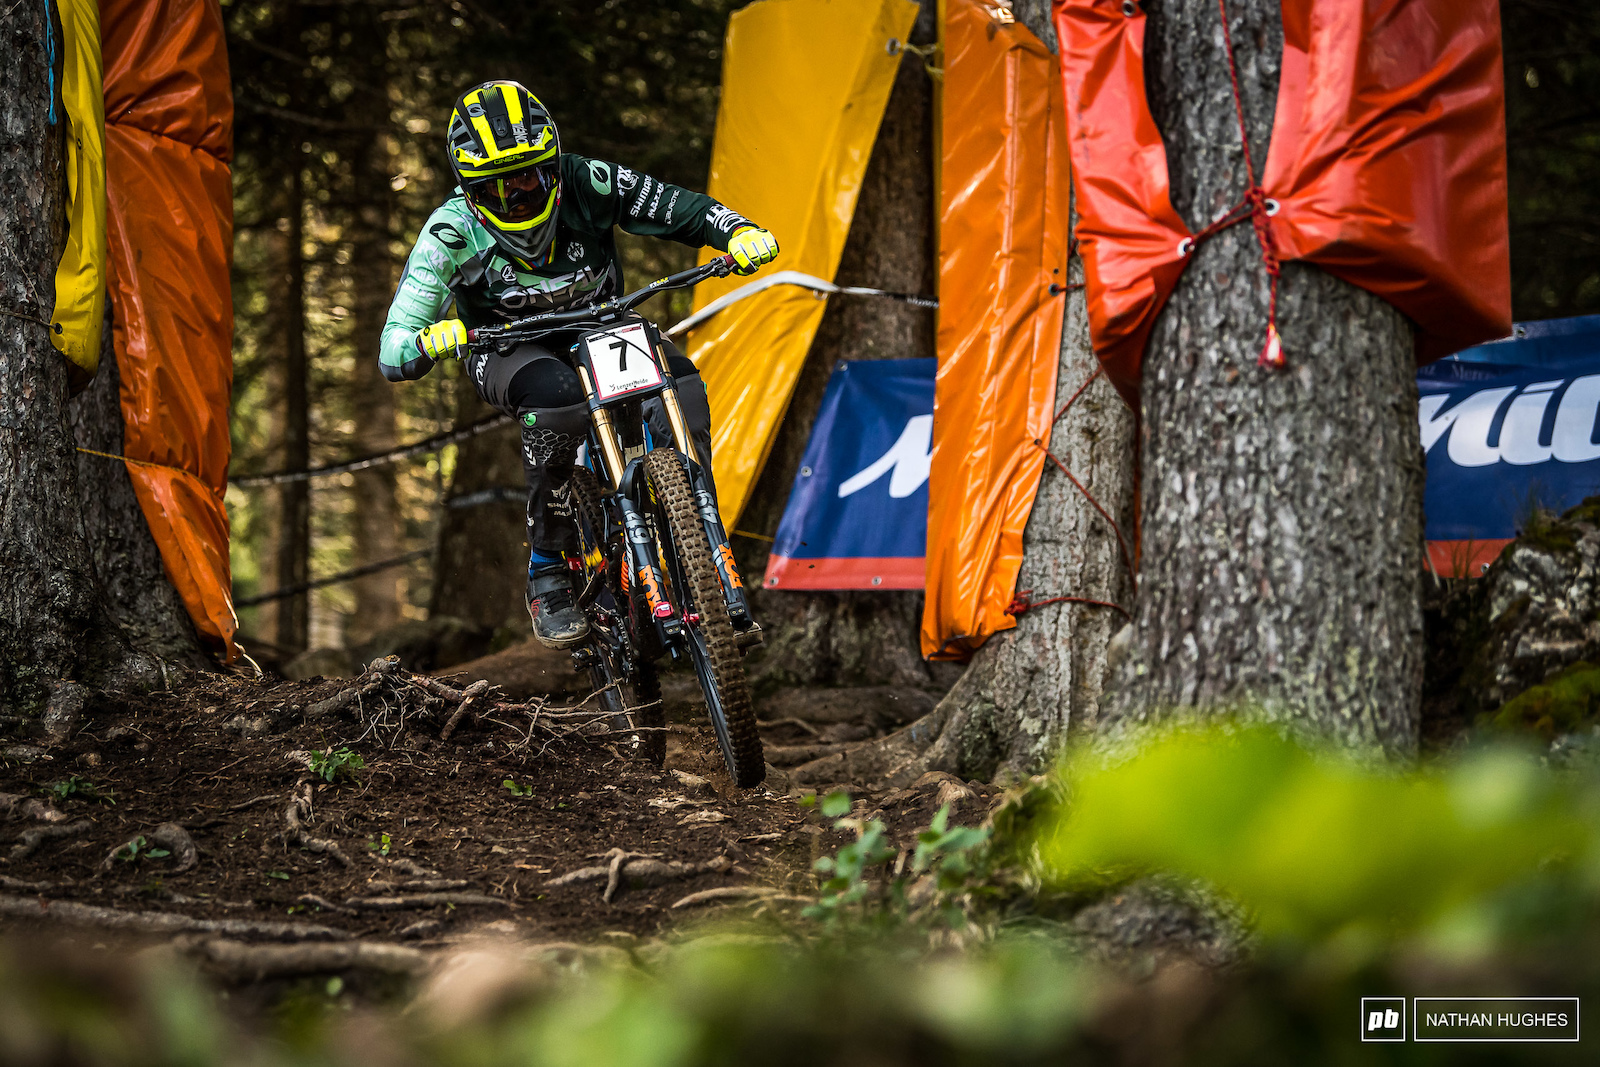 Needless to say the GOAT really is one of mountain biking s greatest treasures. 4th place in qualies for the only man to win at this venue more than once.